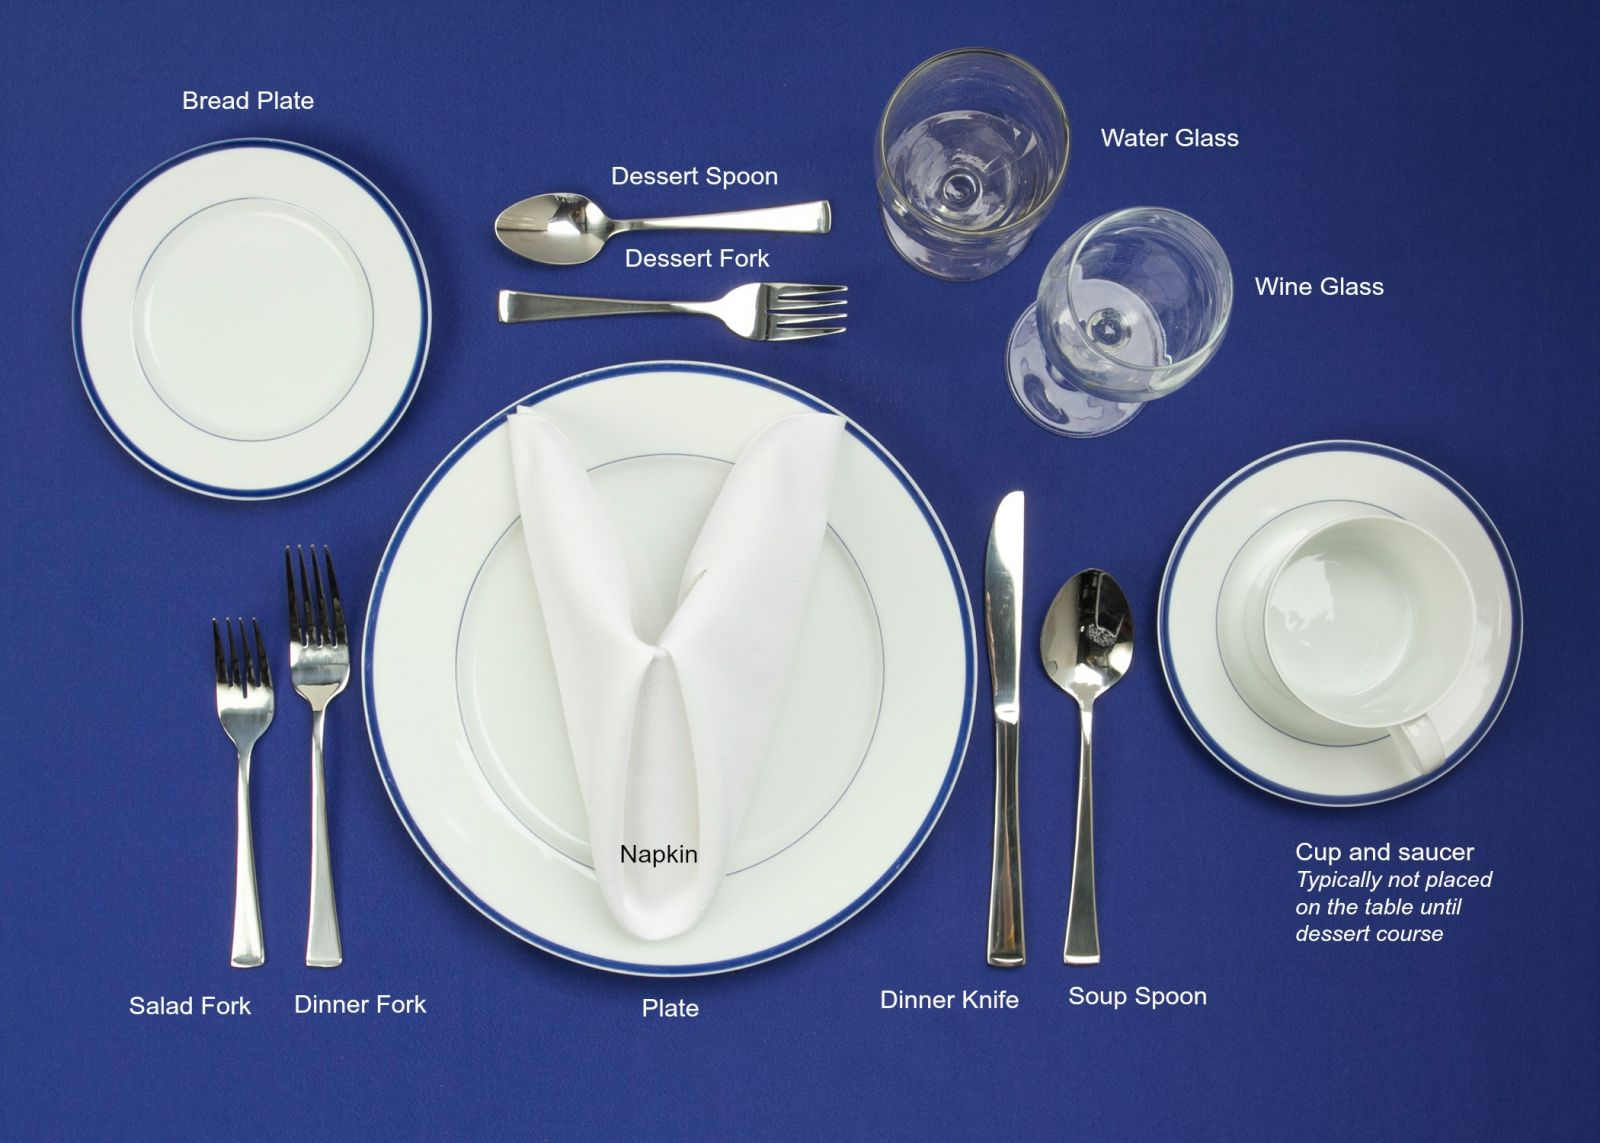 Formal Table Setting & Table Setting 101 | MrFood.com